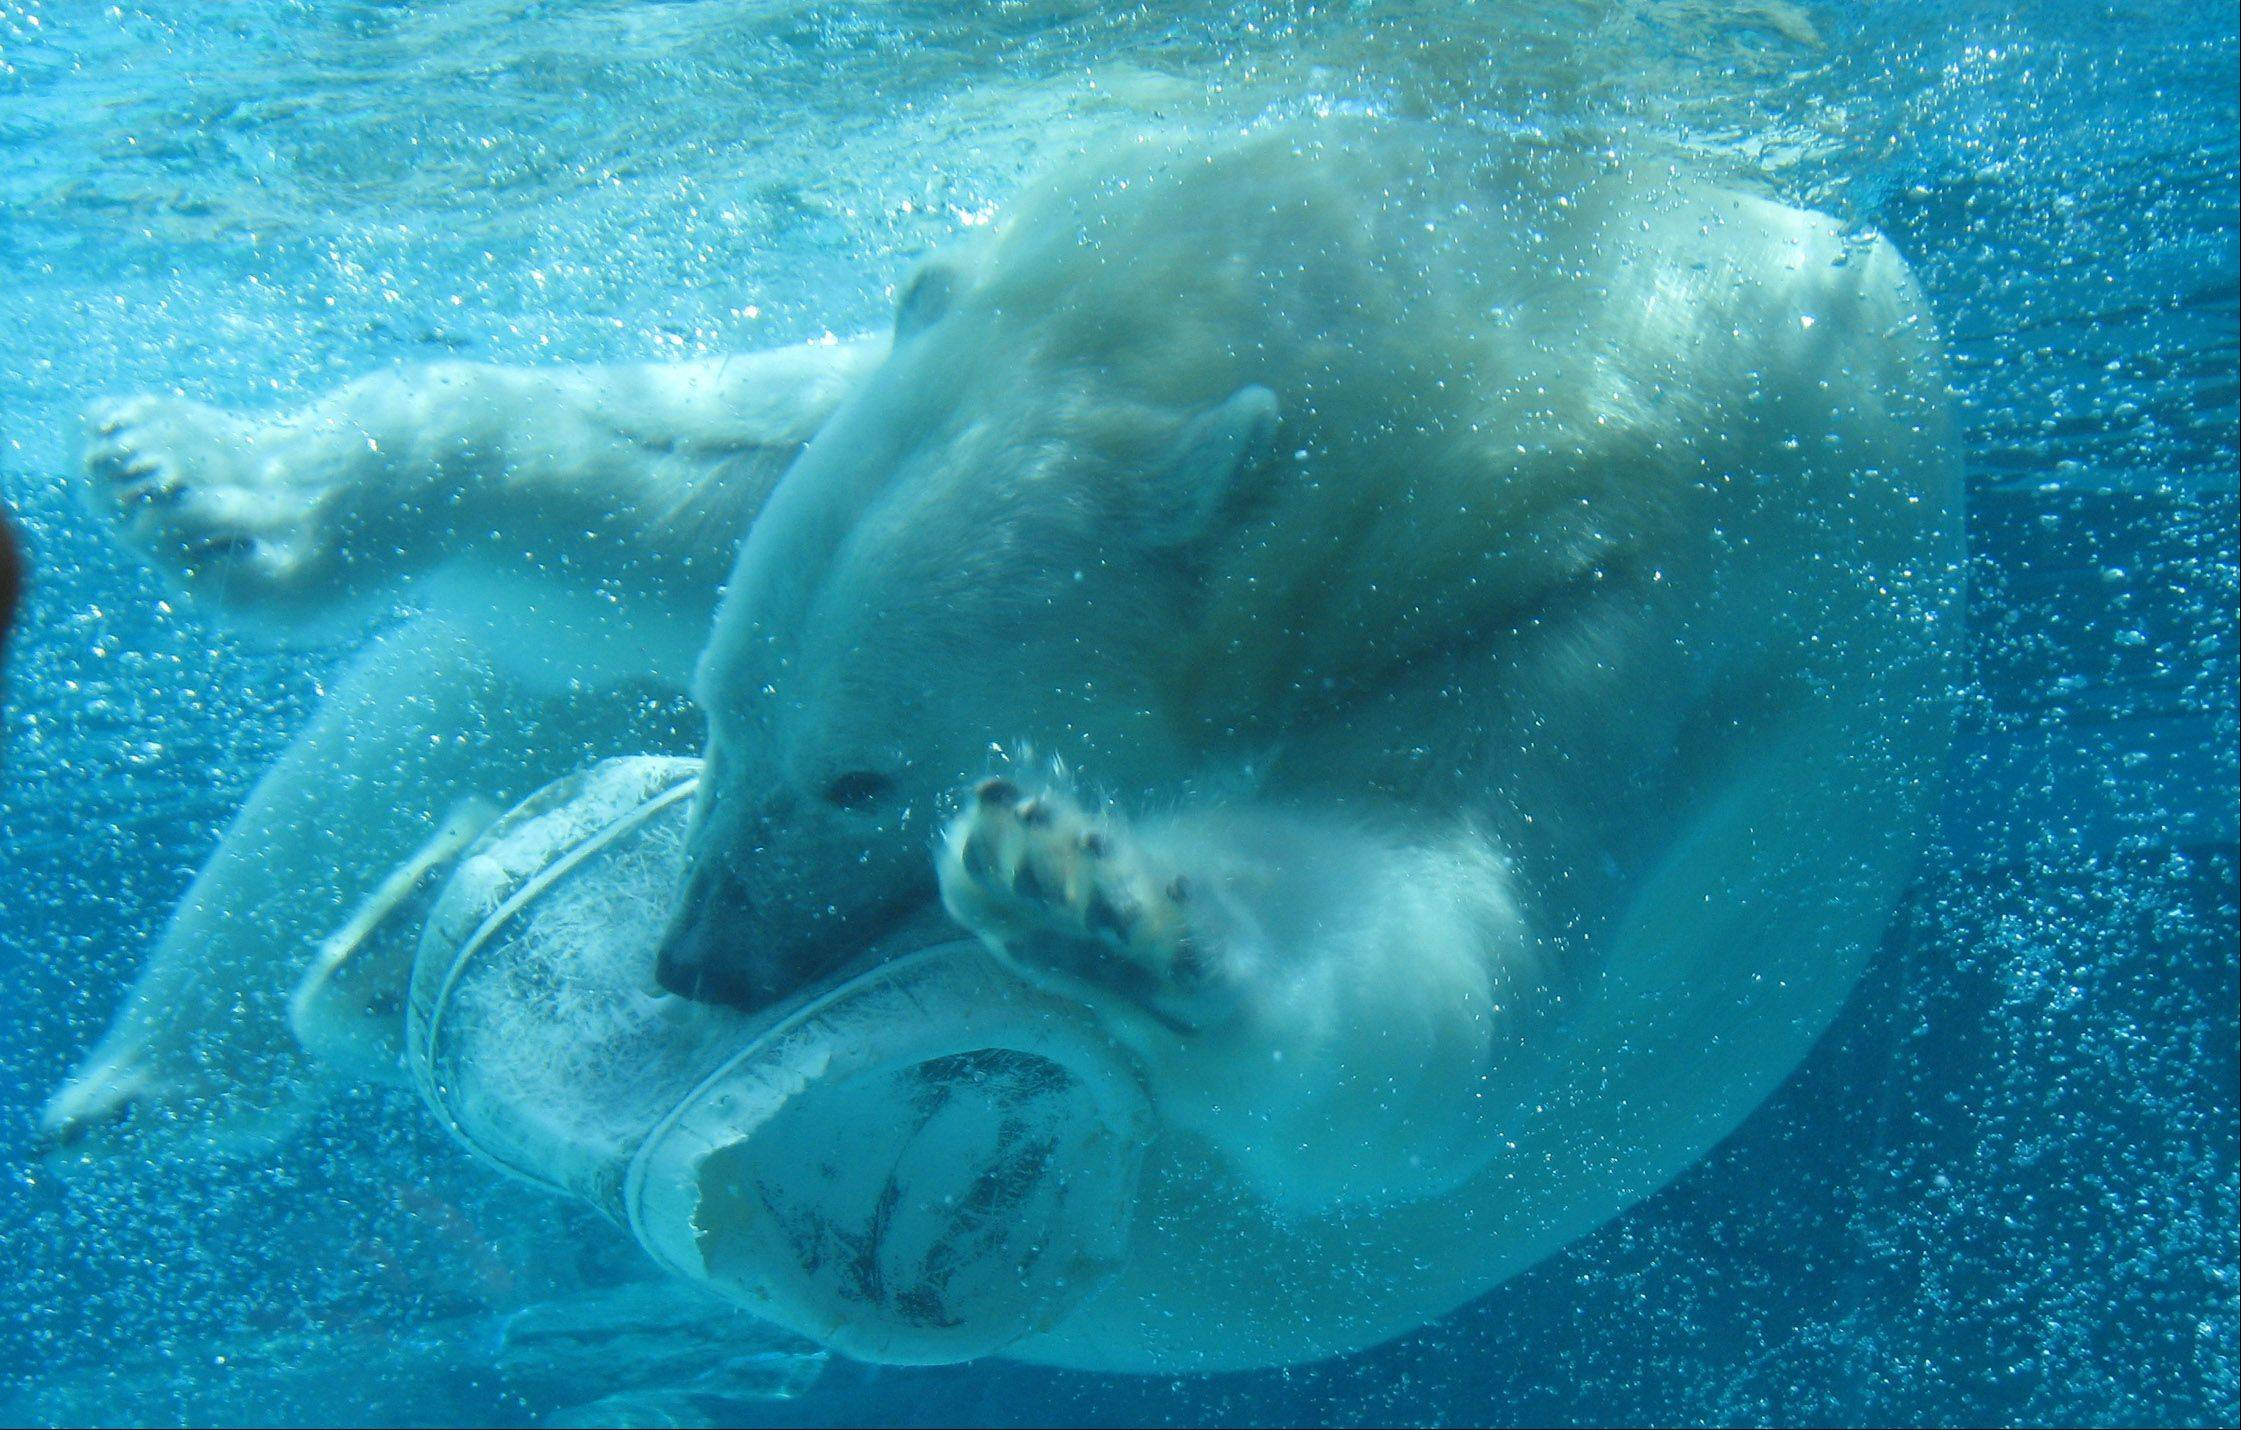 A polar bear plays with an empty bucket under the water on August 23rd at Lincoln Park Zoo in Chicago.